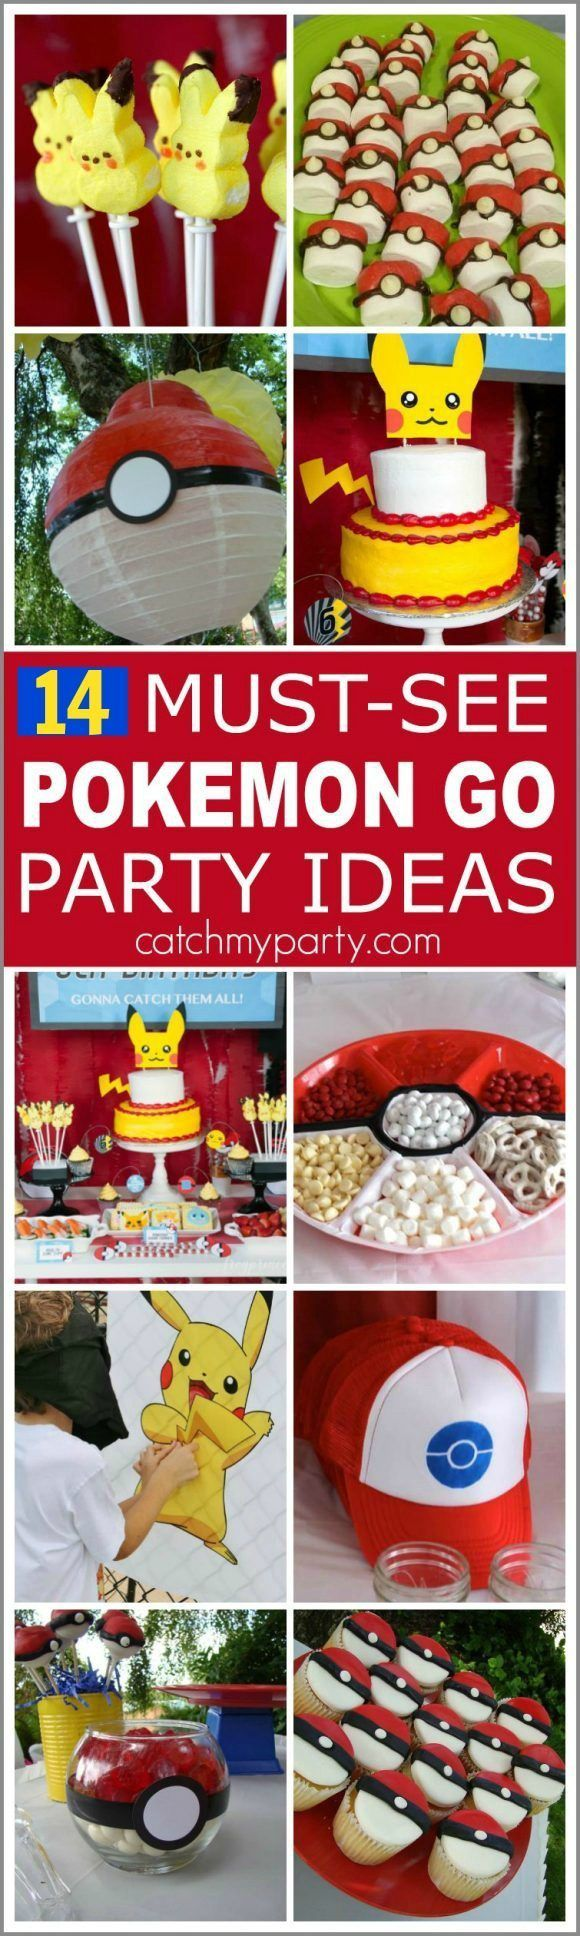 14 Must-See Pokemon Go Party Ideas | The Catch My Party Blog | Bloglovin'